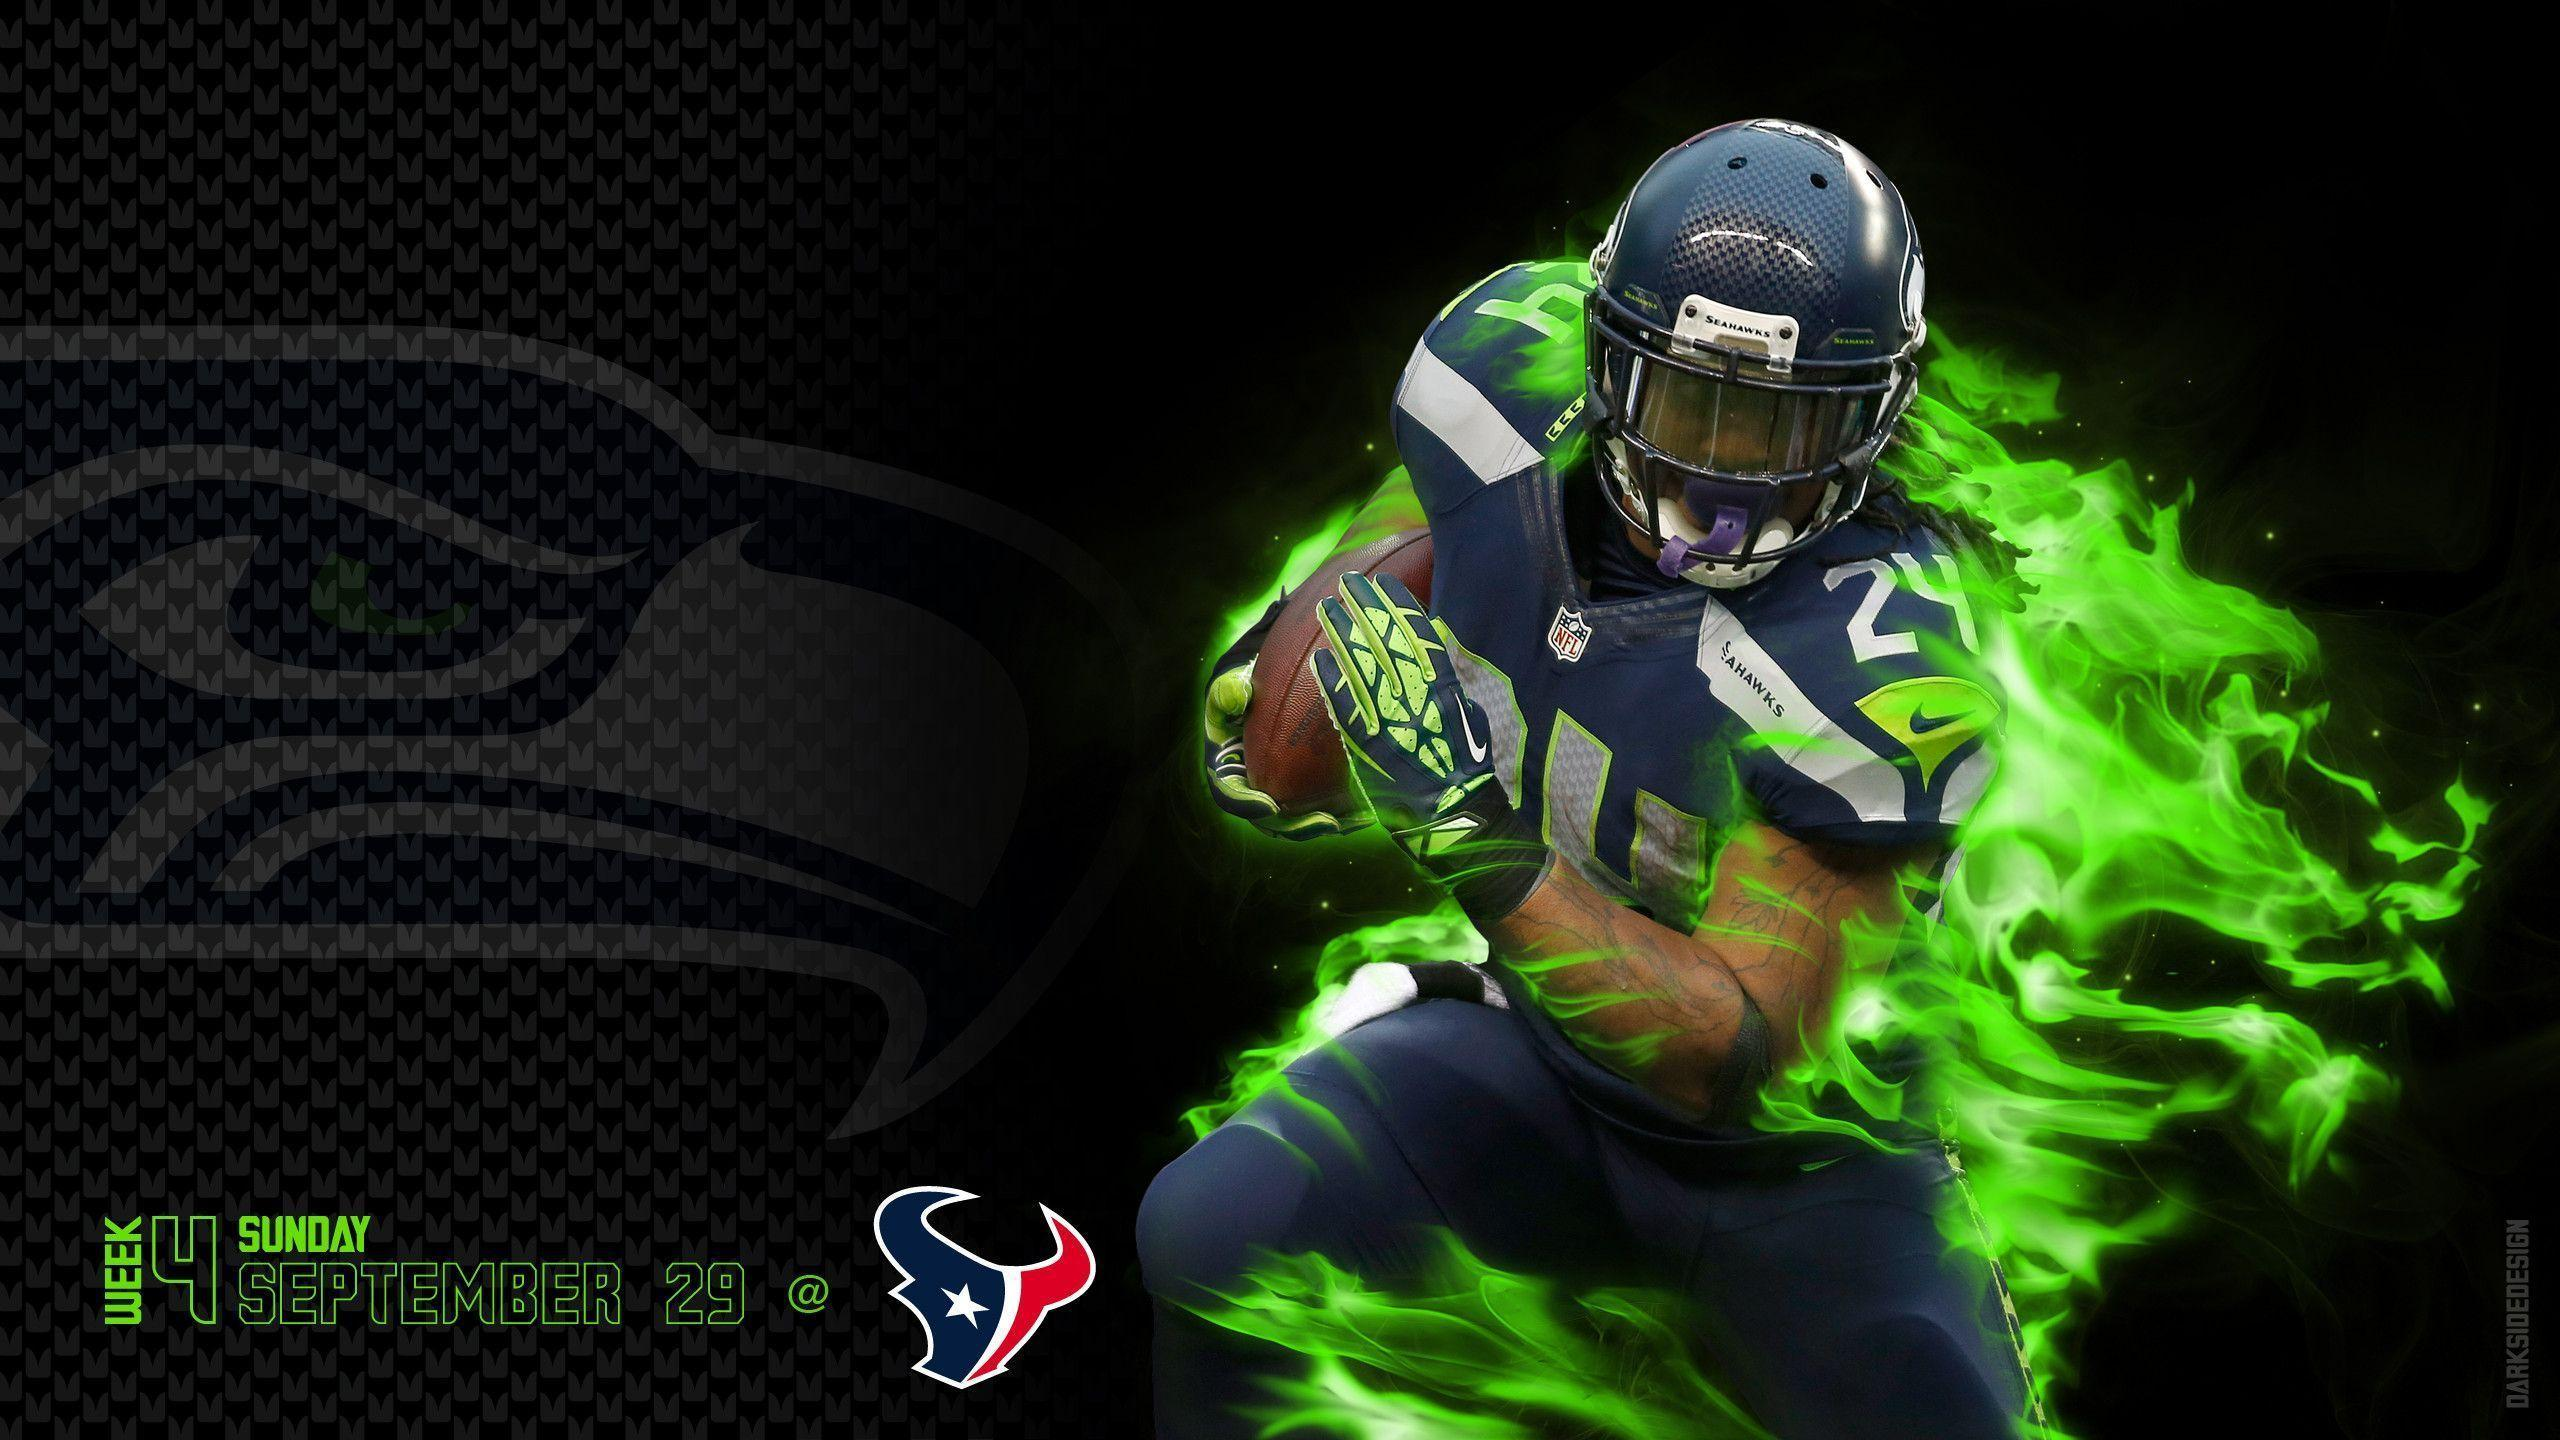 Free Download Cool Nfl Football Wallpapers 2560x1440 For Your Desktop Mobile Tablet Explore 74 Cool Football Backgrounds Awesome Football Wallpapers Free Wallpaper Football Cool Football Wallpaper